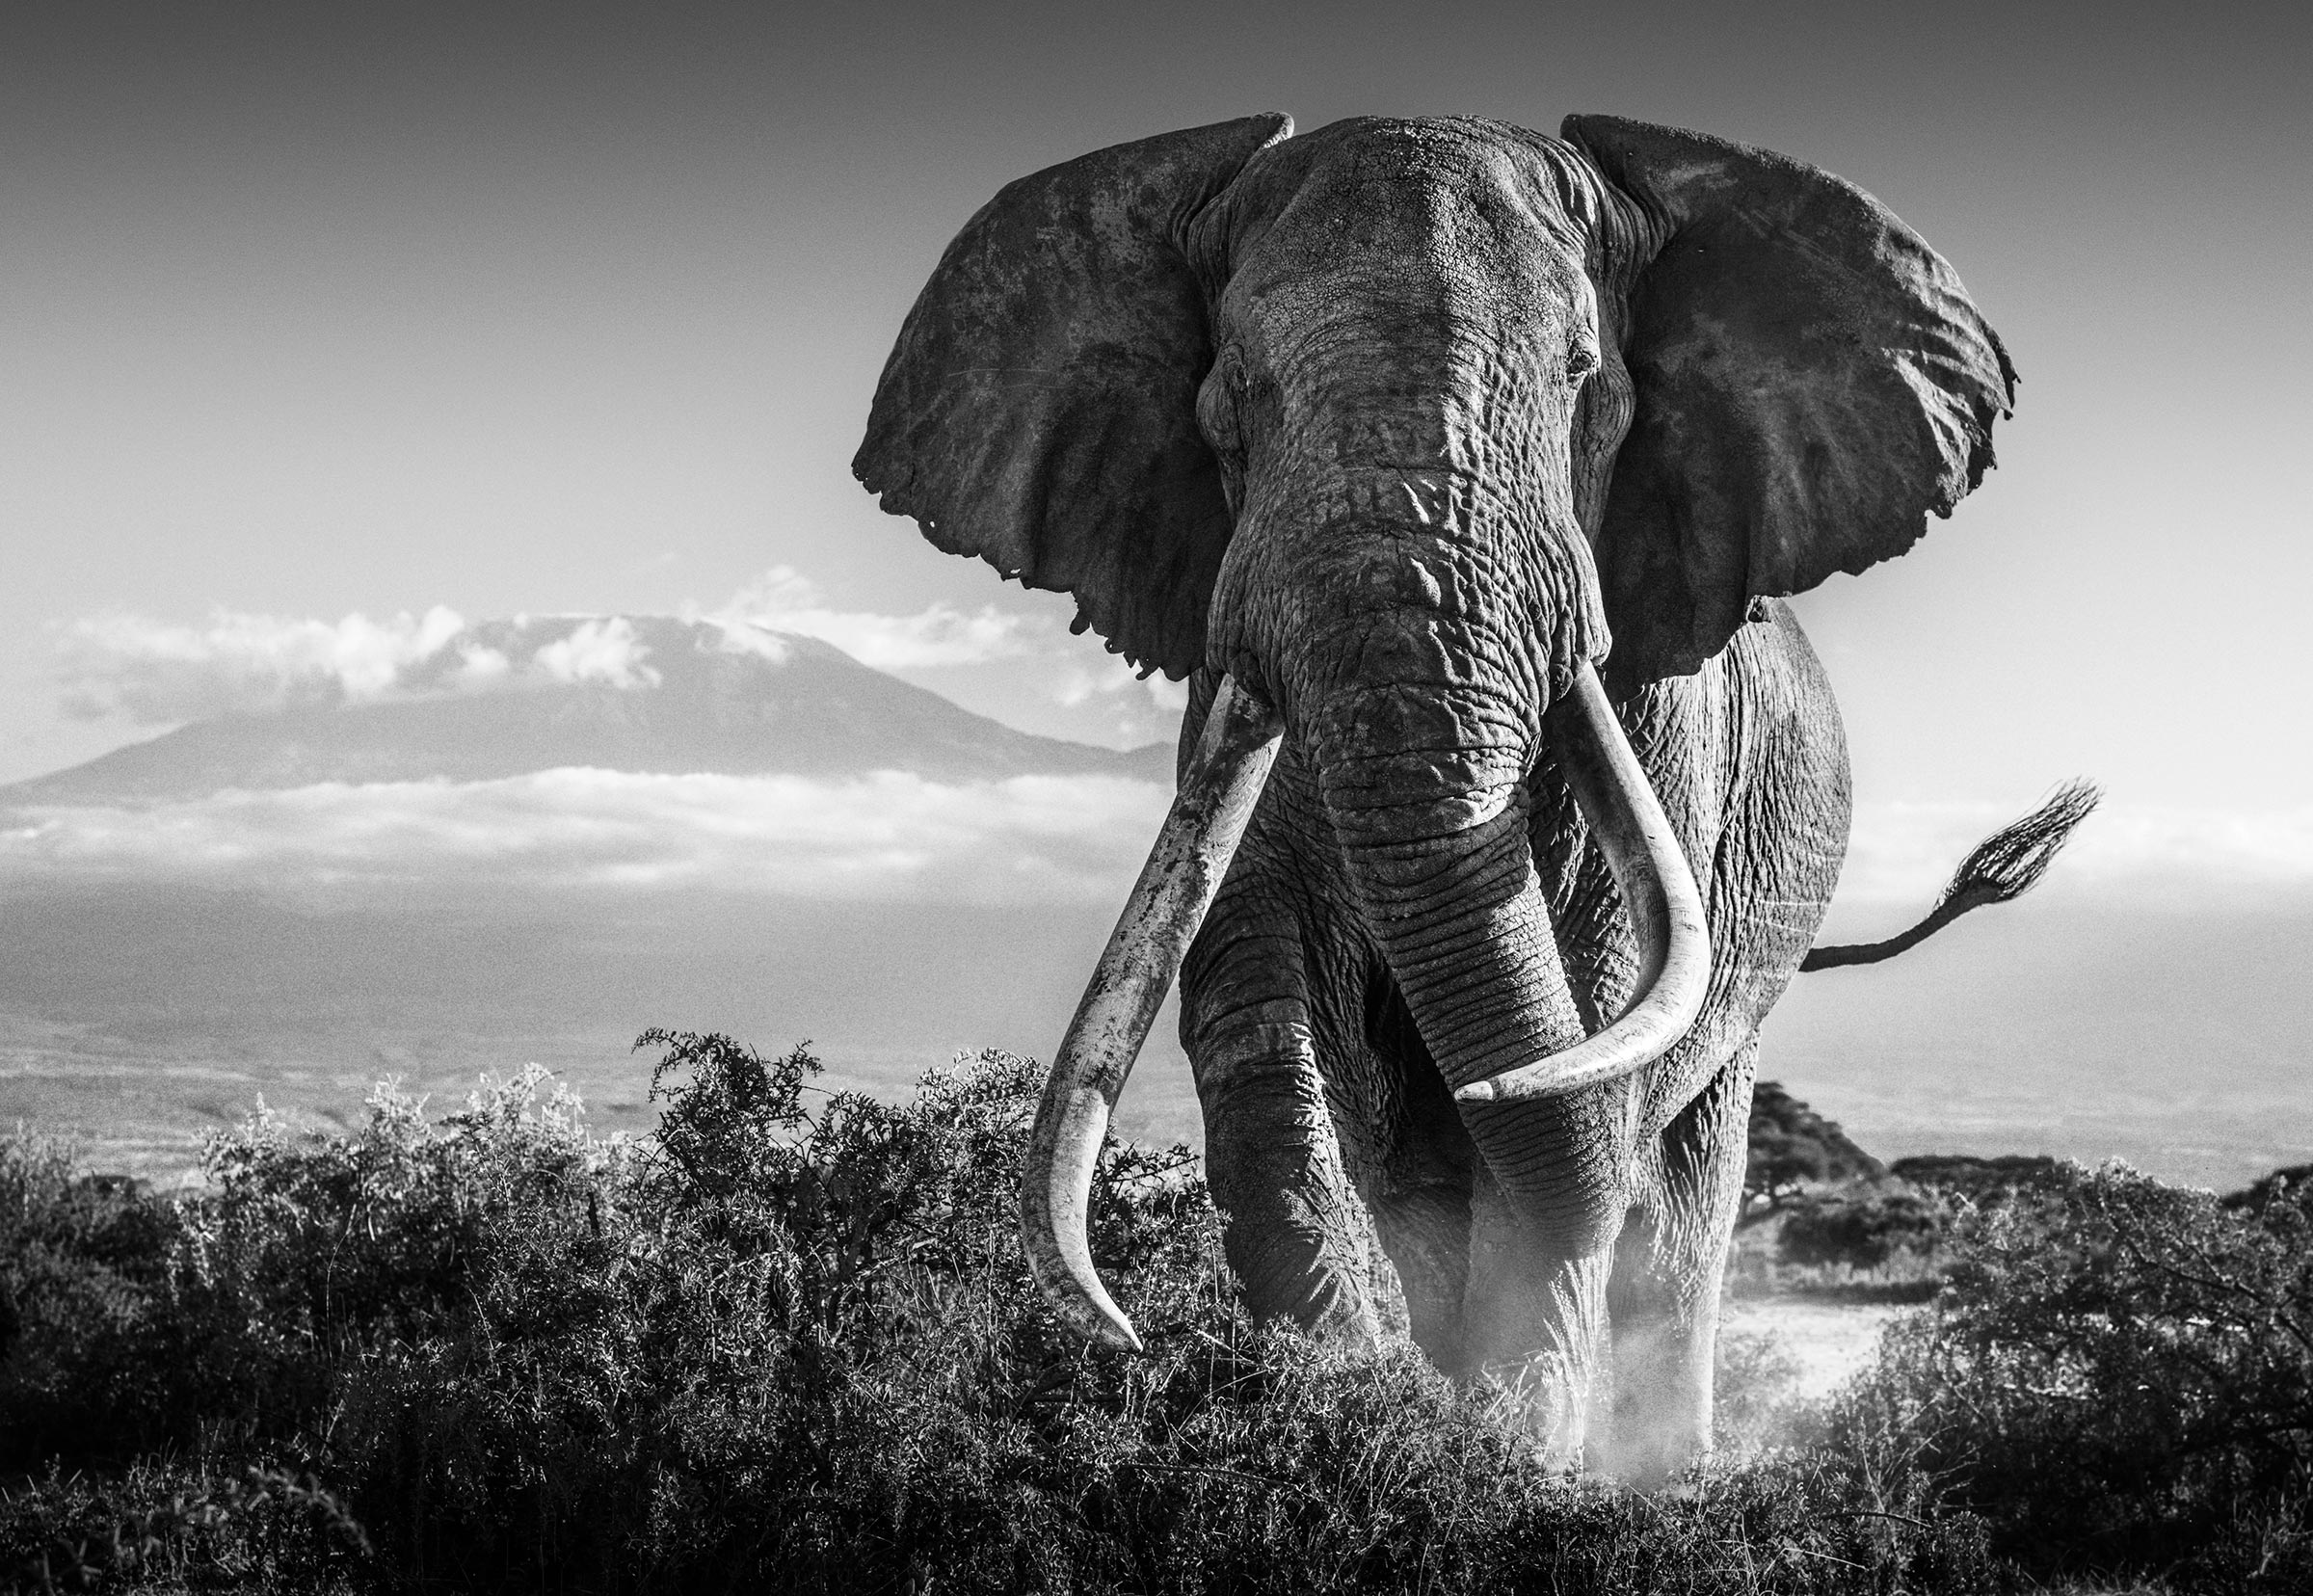 Afrika - David Yarrow - Leonhard's Gallery